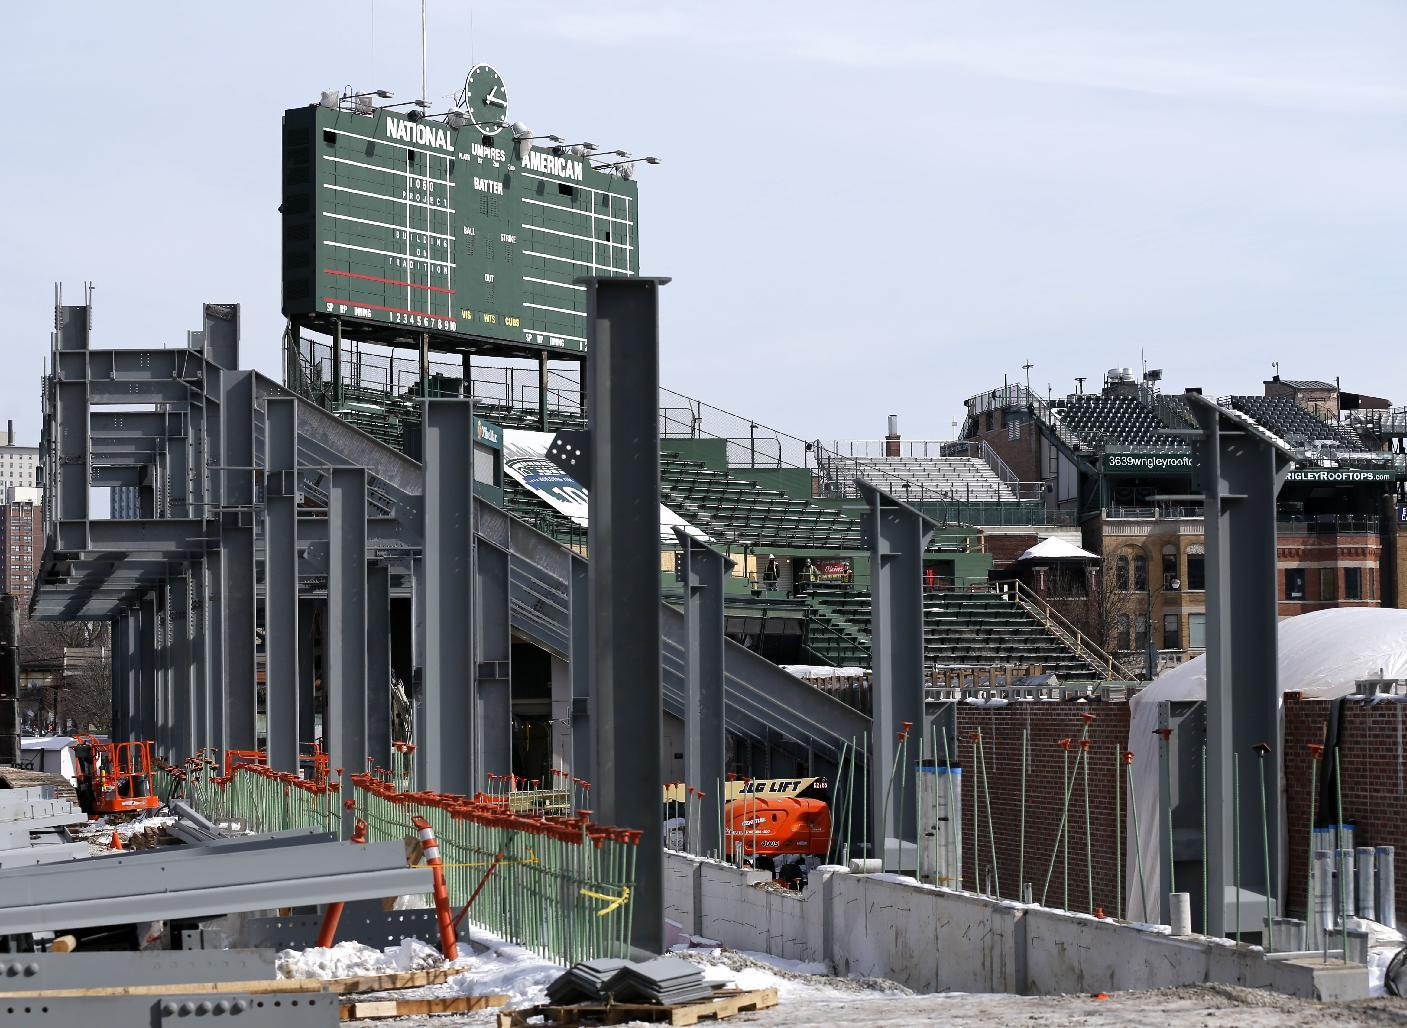 Cubs expect 'dusty' year amid Wrigley Field renovations